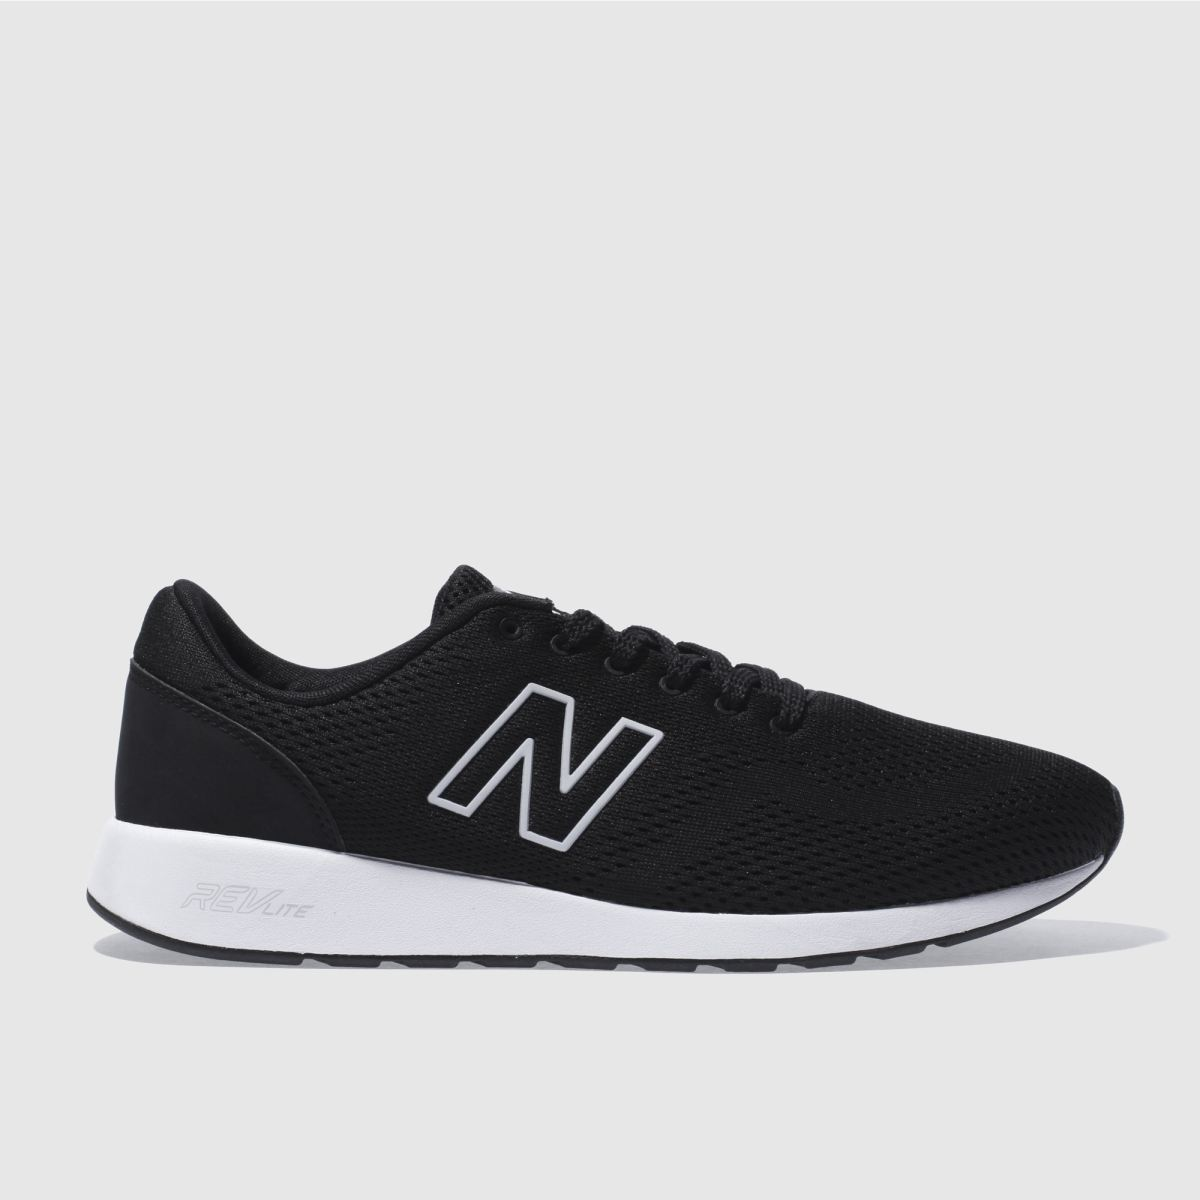 New Balance Black & White 420 Trainers